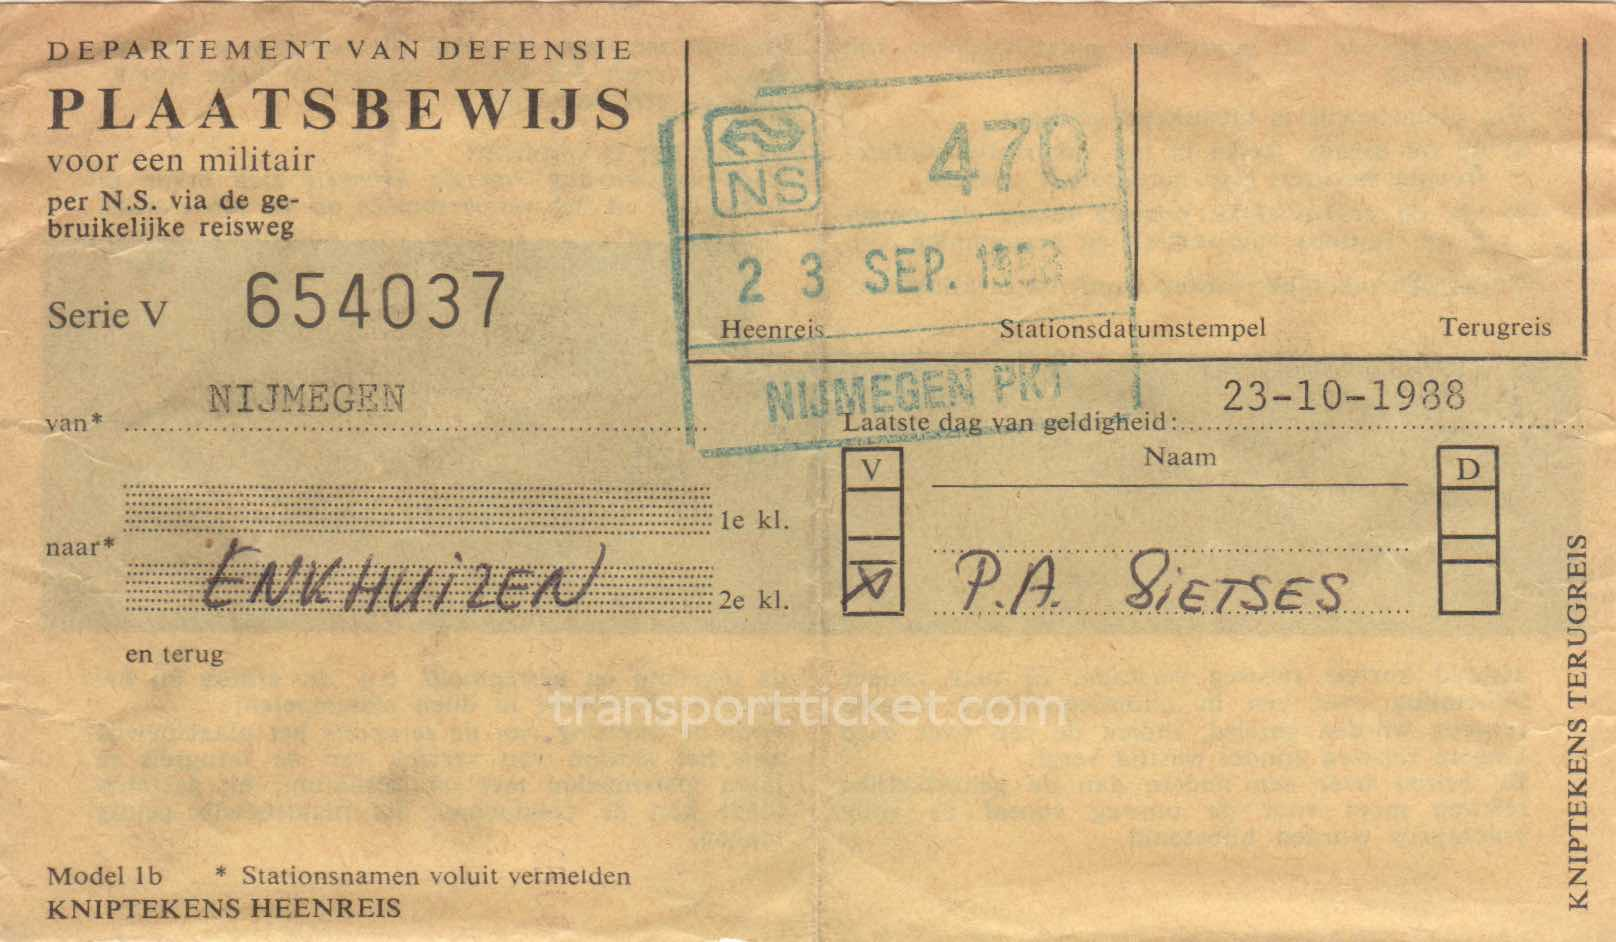 transport ticket issued by Dutch Department of Defense (1988)